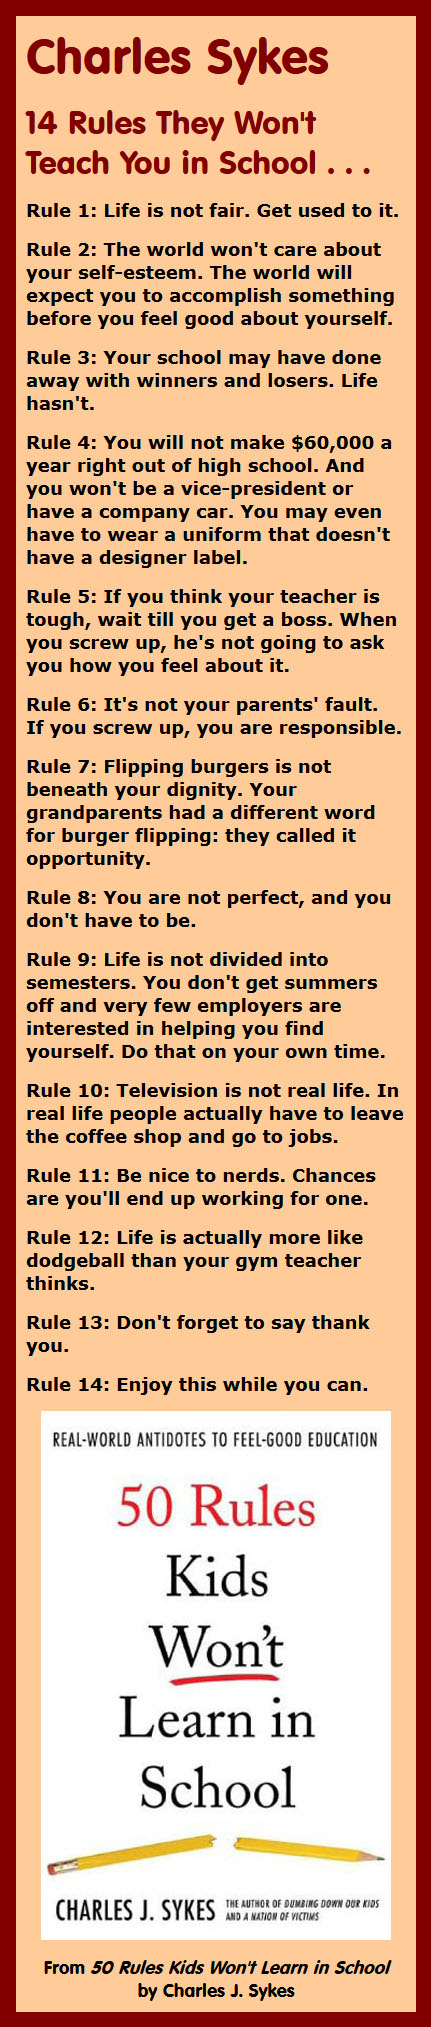 14 Rules of Life They Don't Teach in School